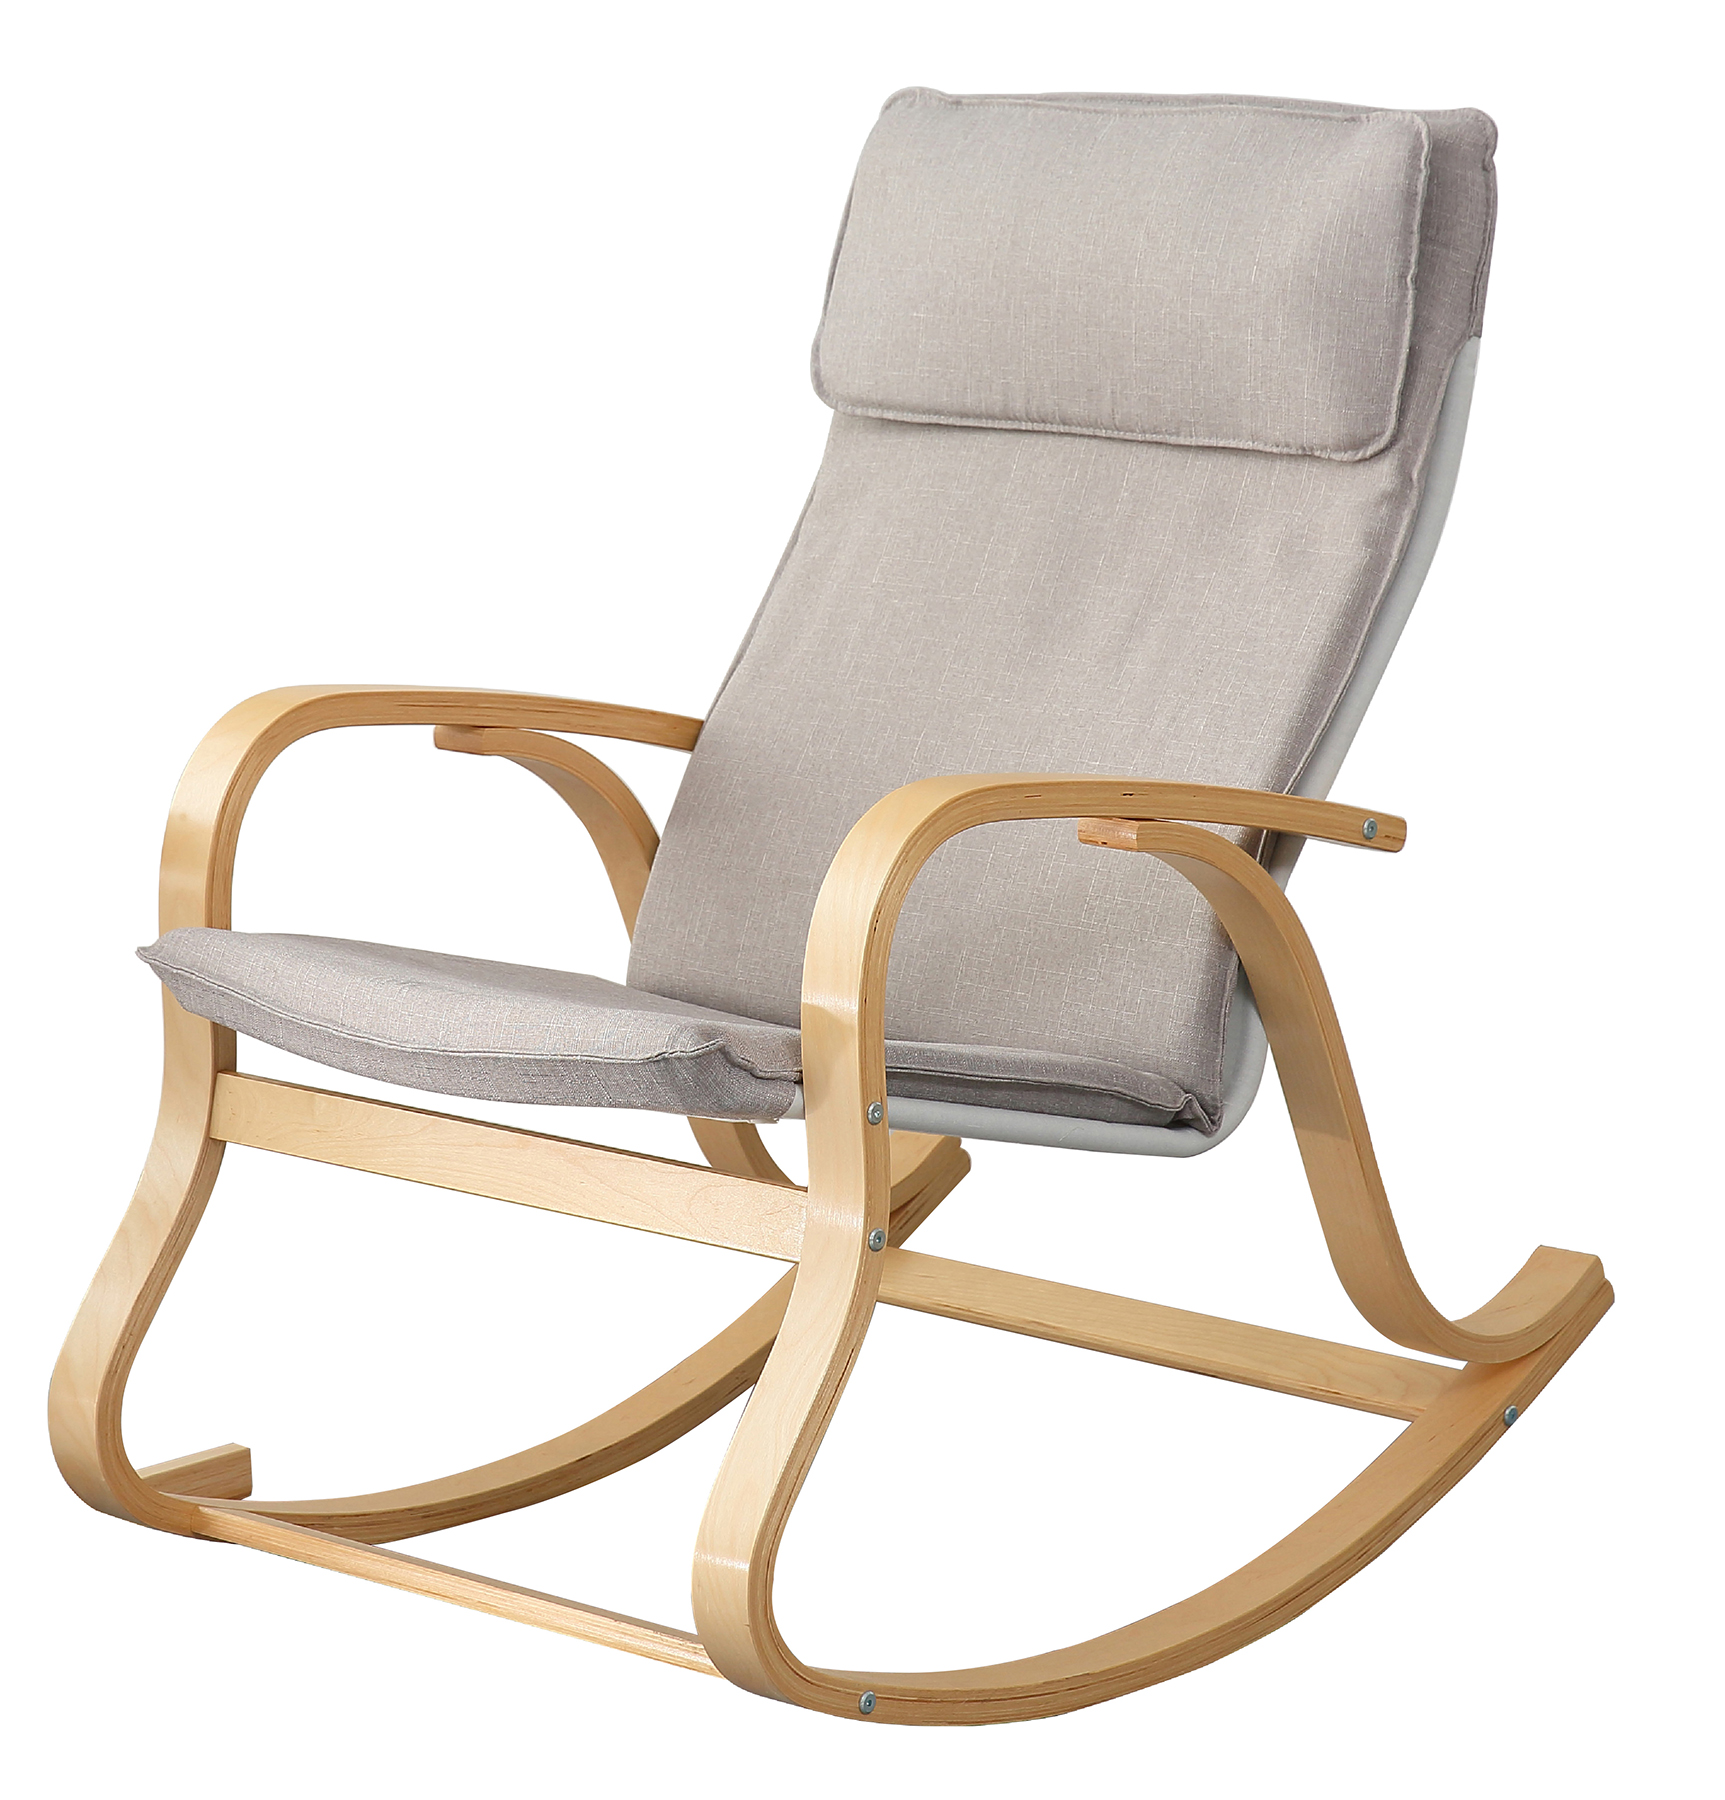 Comfortable Rocking Chair Orolay Comfortable Relaxing Rocking Chair Lounge Chair